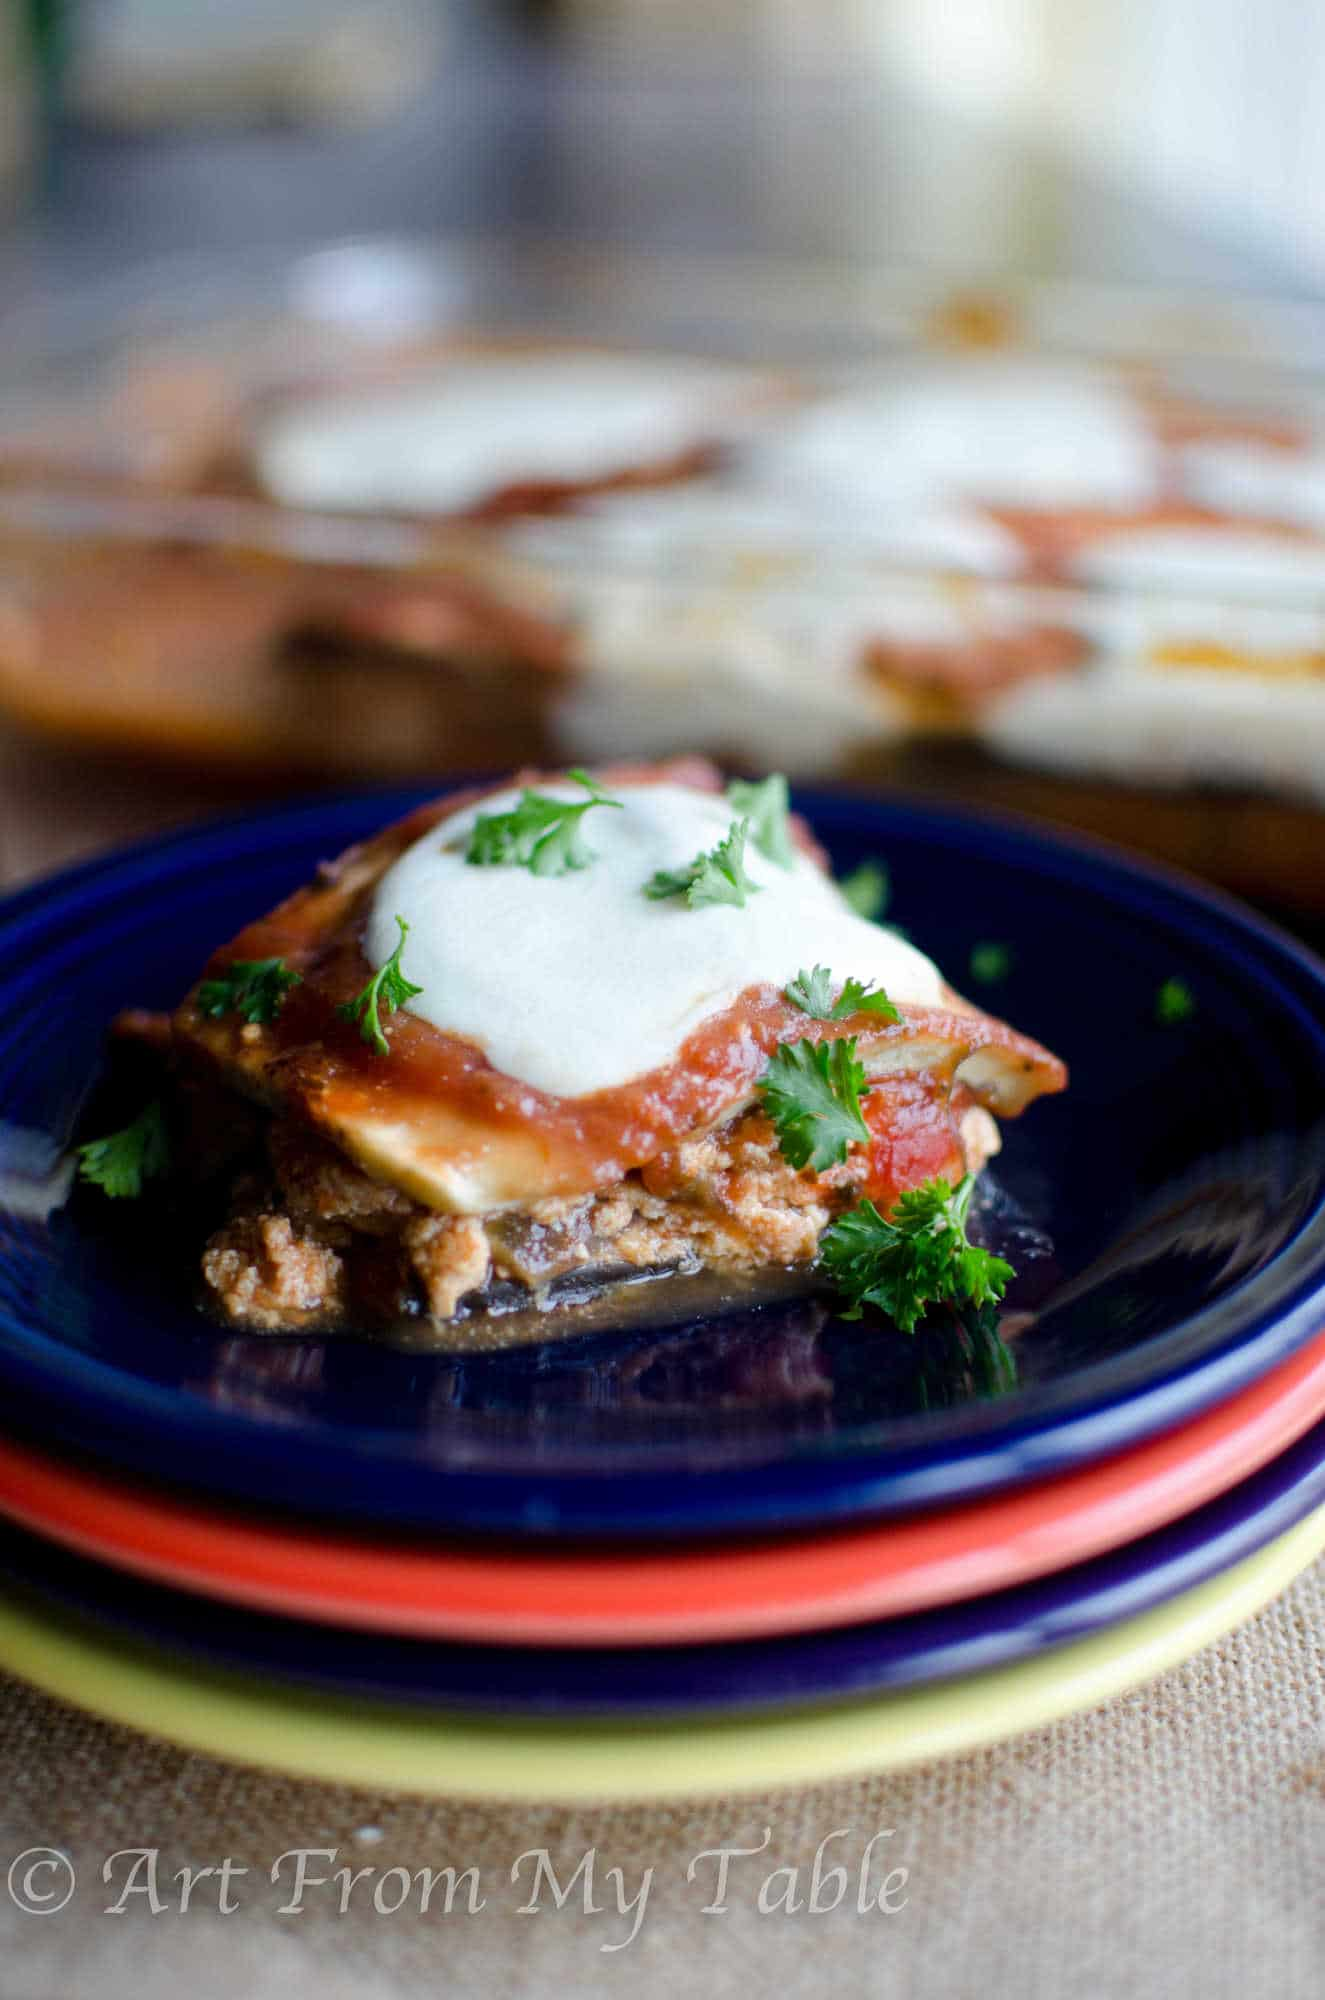 a piece of eggplant lasagna placed on a plate topped with fresh mozzarella cheese and parsley. Casserole dish blurred in the background